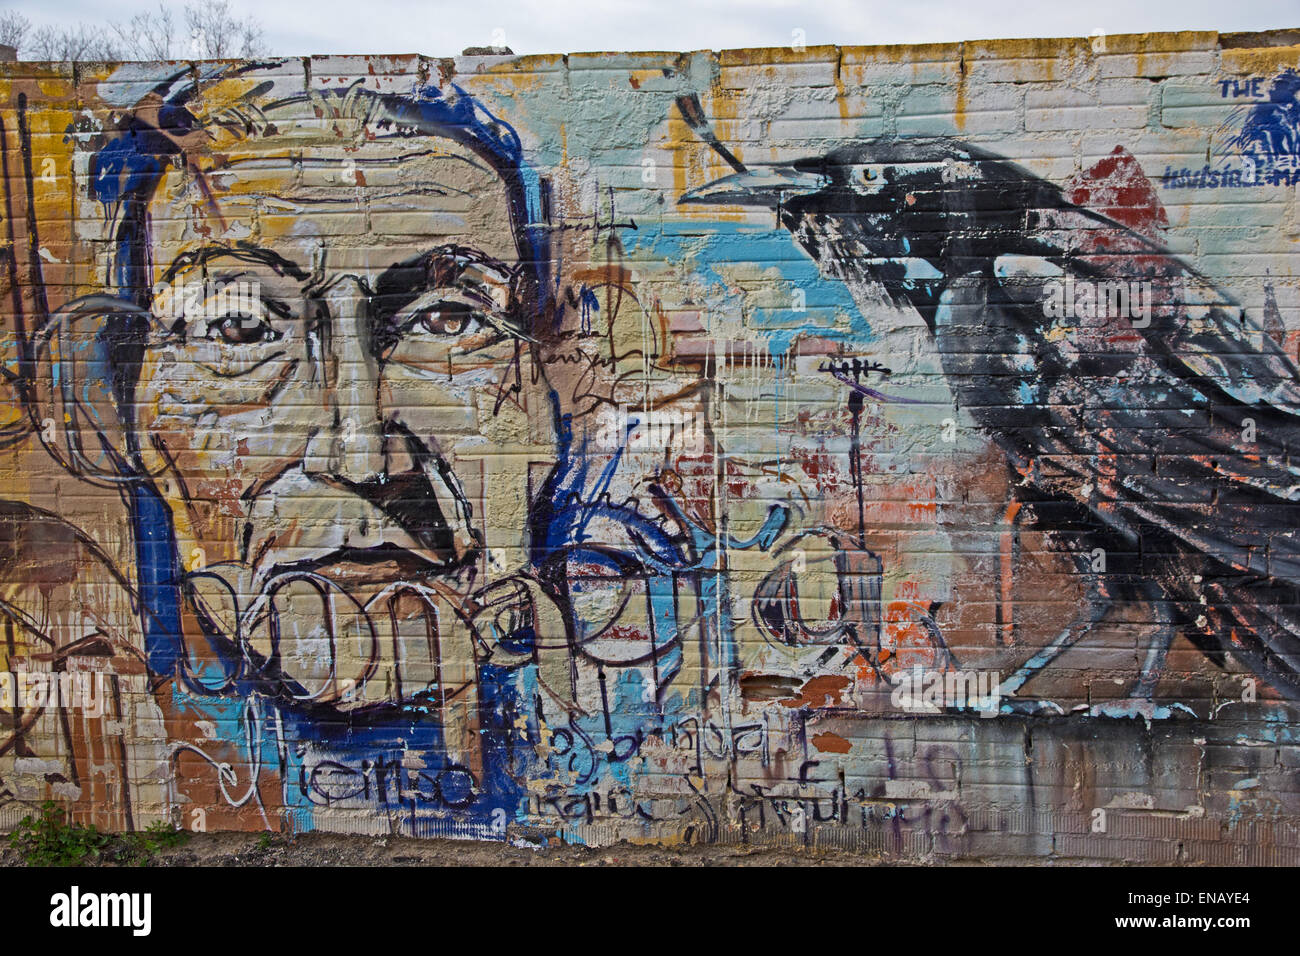 Graffiti On Wall At Roadside Stock Photo Alamy